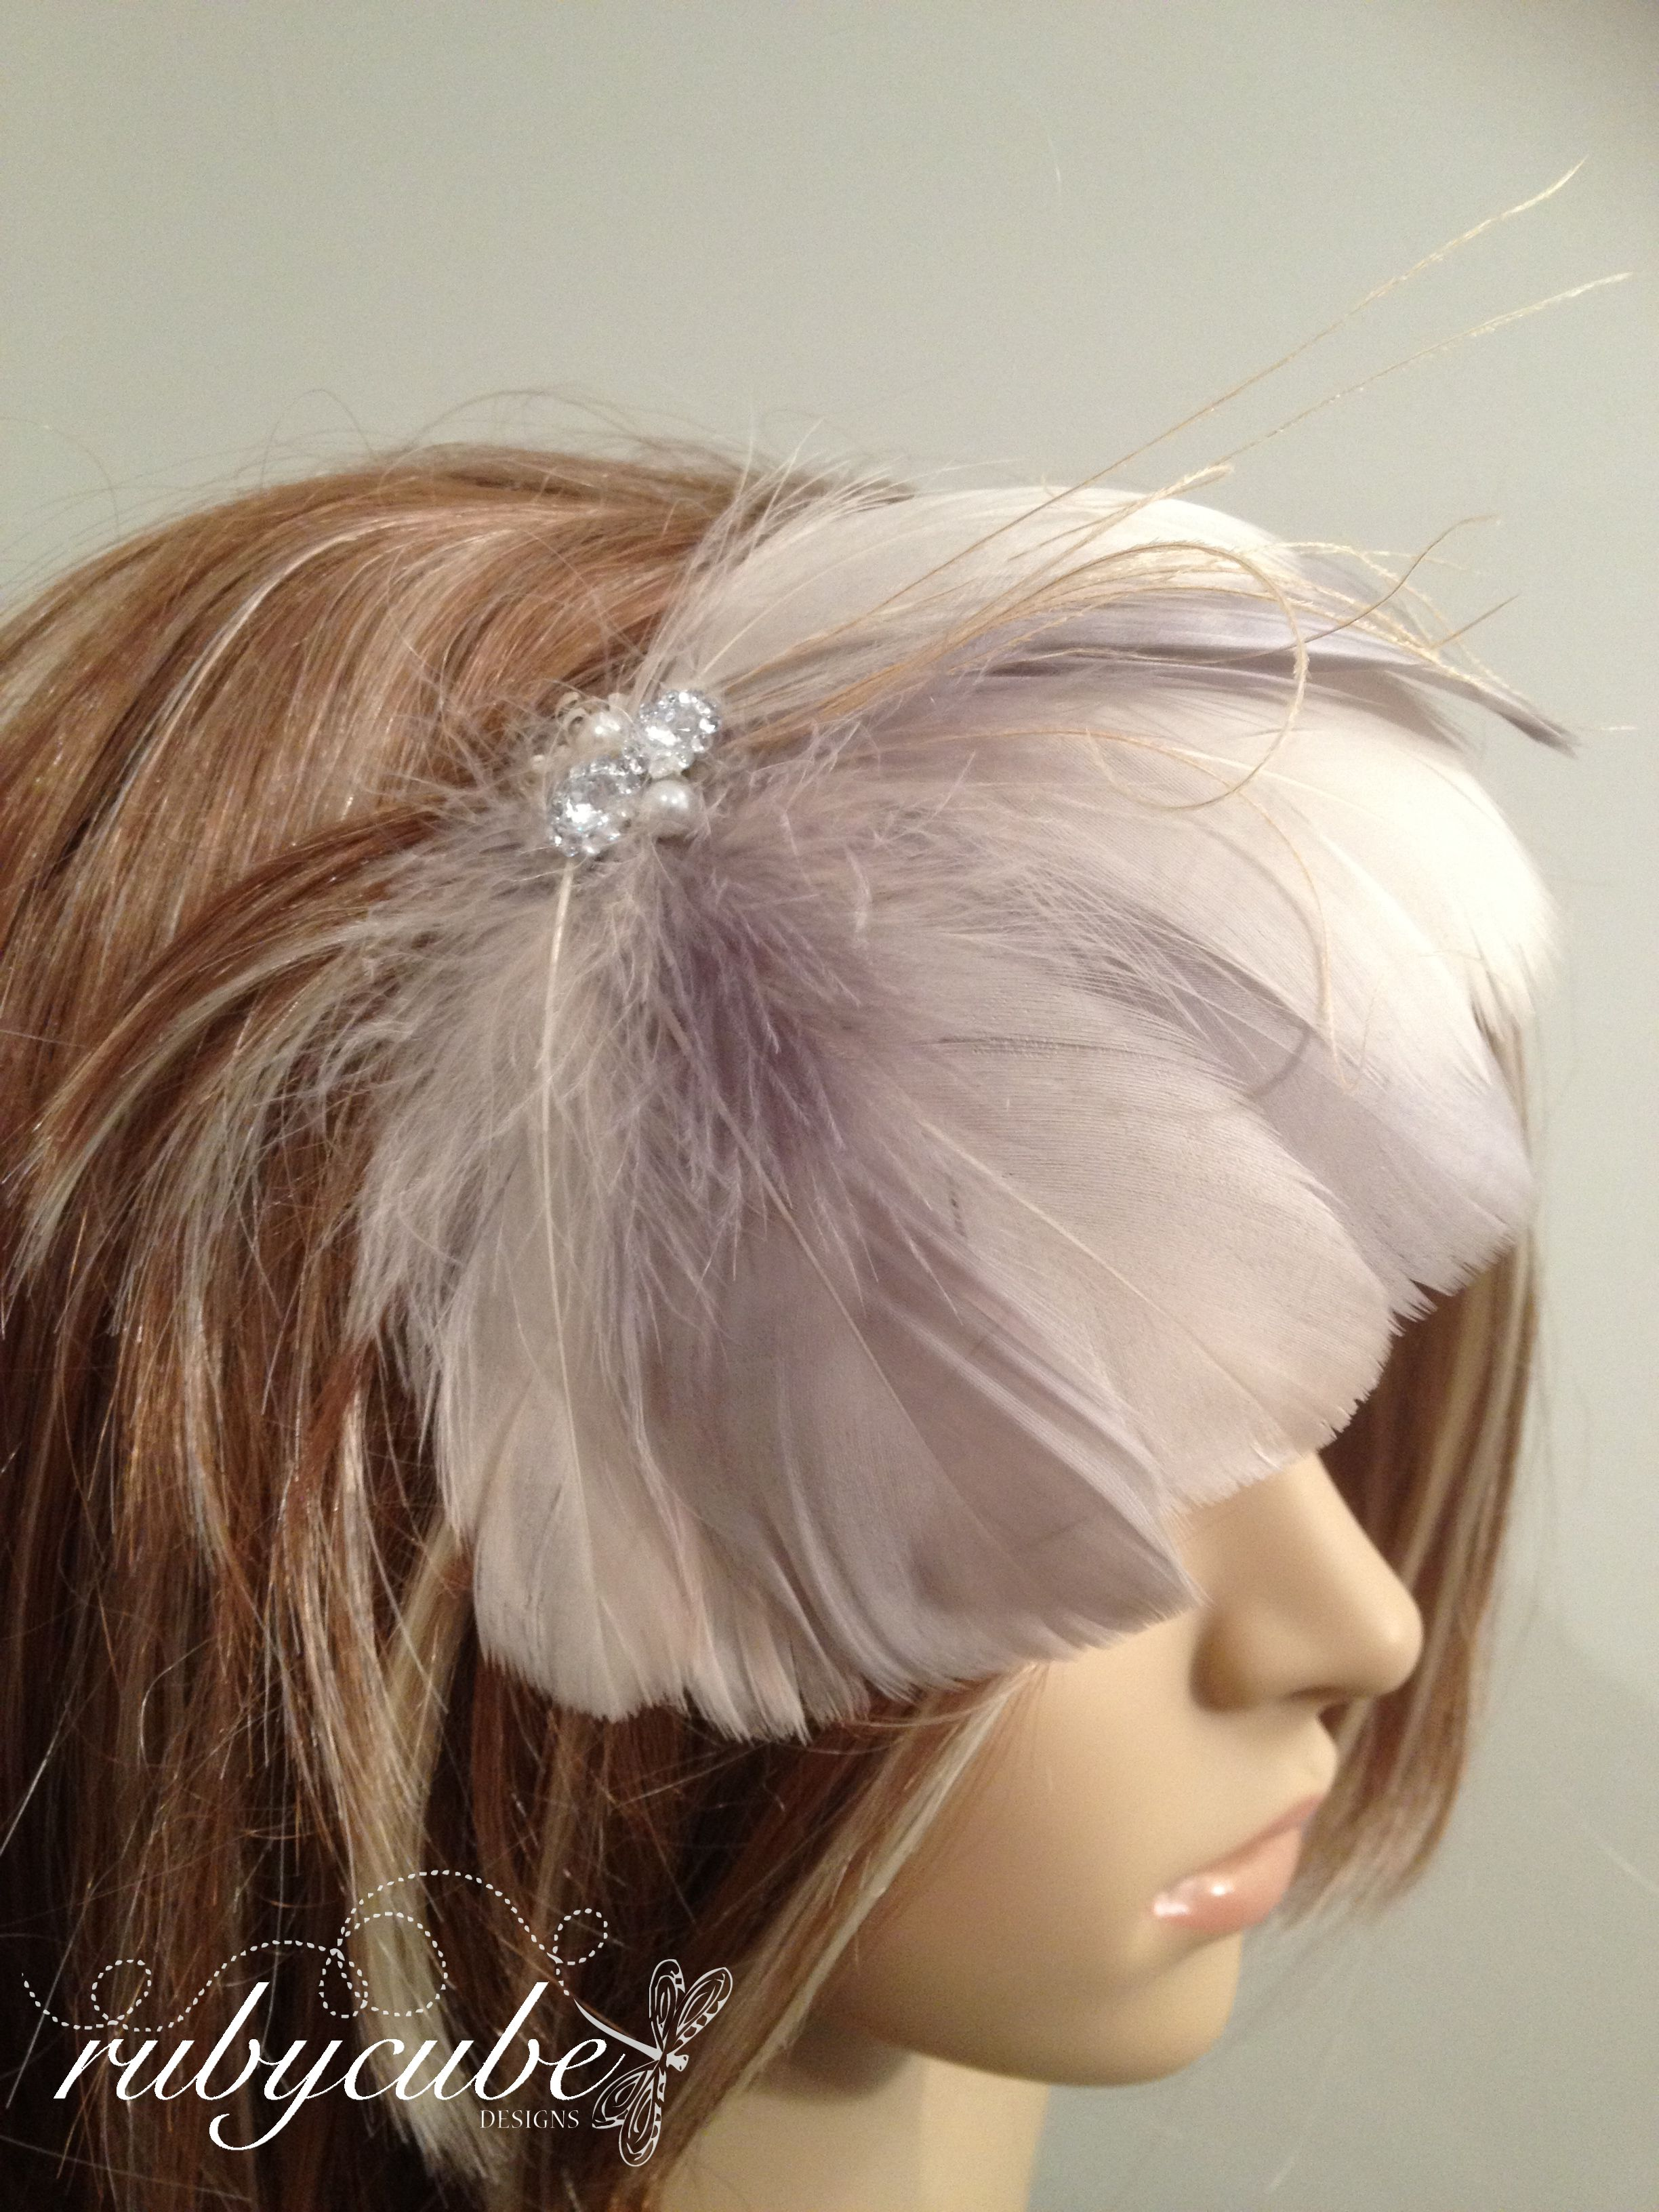 Champagne u grey feather fan perfect hair accessory for weddings